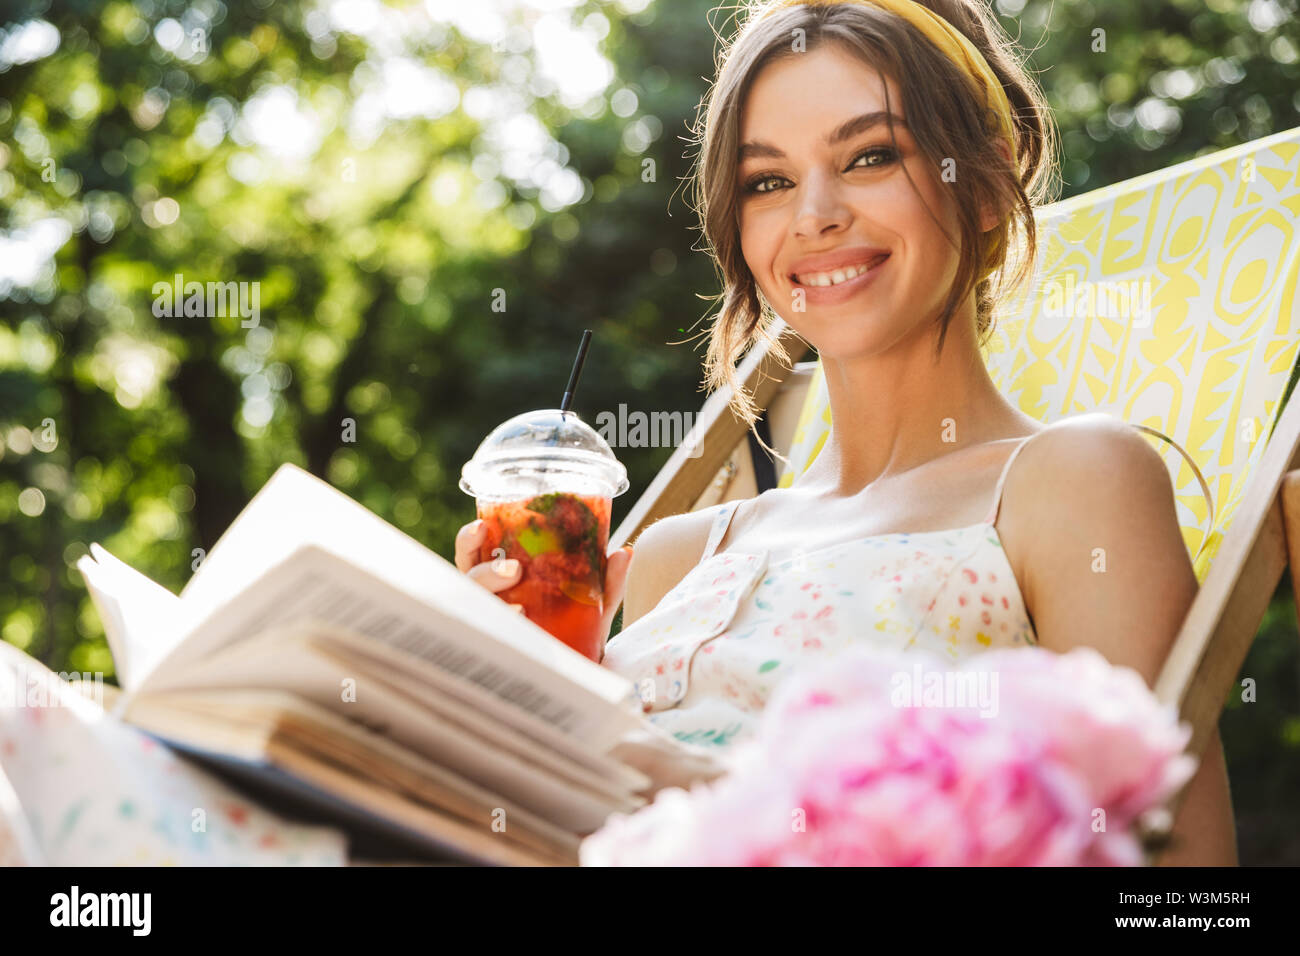 Image of a cheery smiling beautiful young pretty woman in green park drinking juice lies on sun bed reading book. - Stock Image